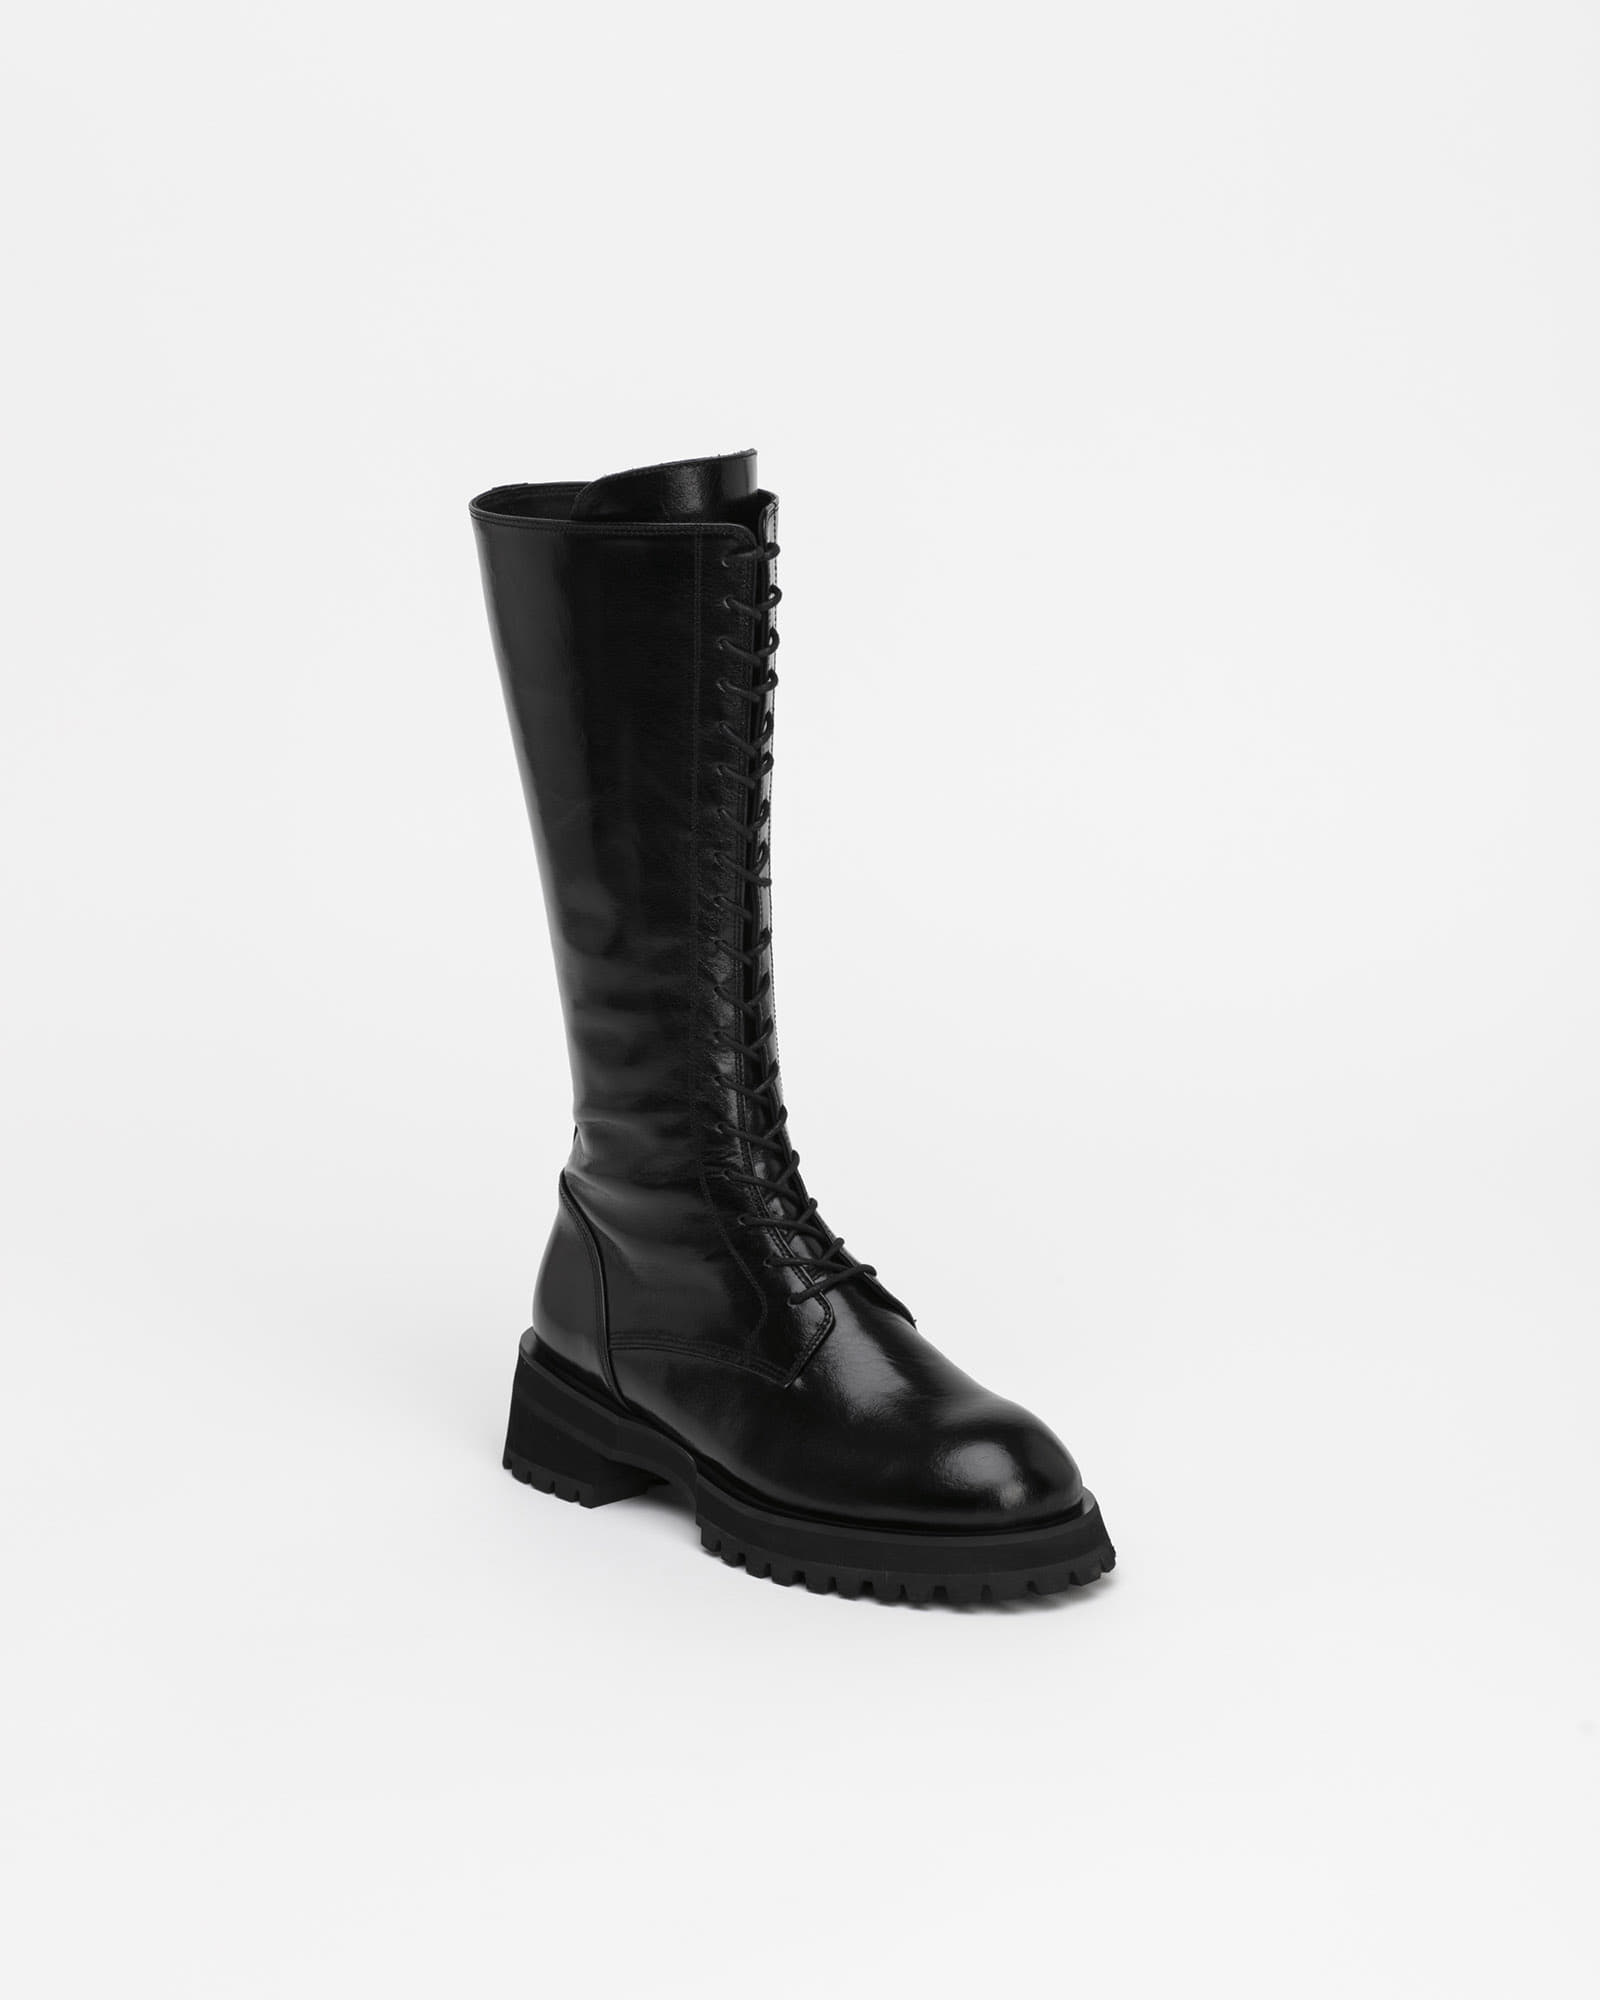 Apost Long Lace-up Boots in Textured Black